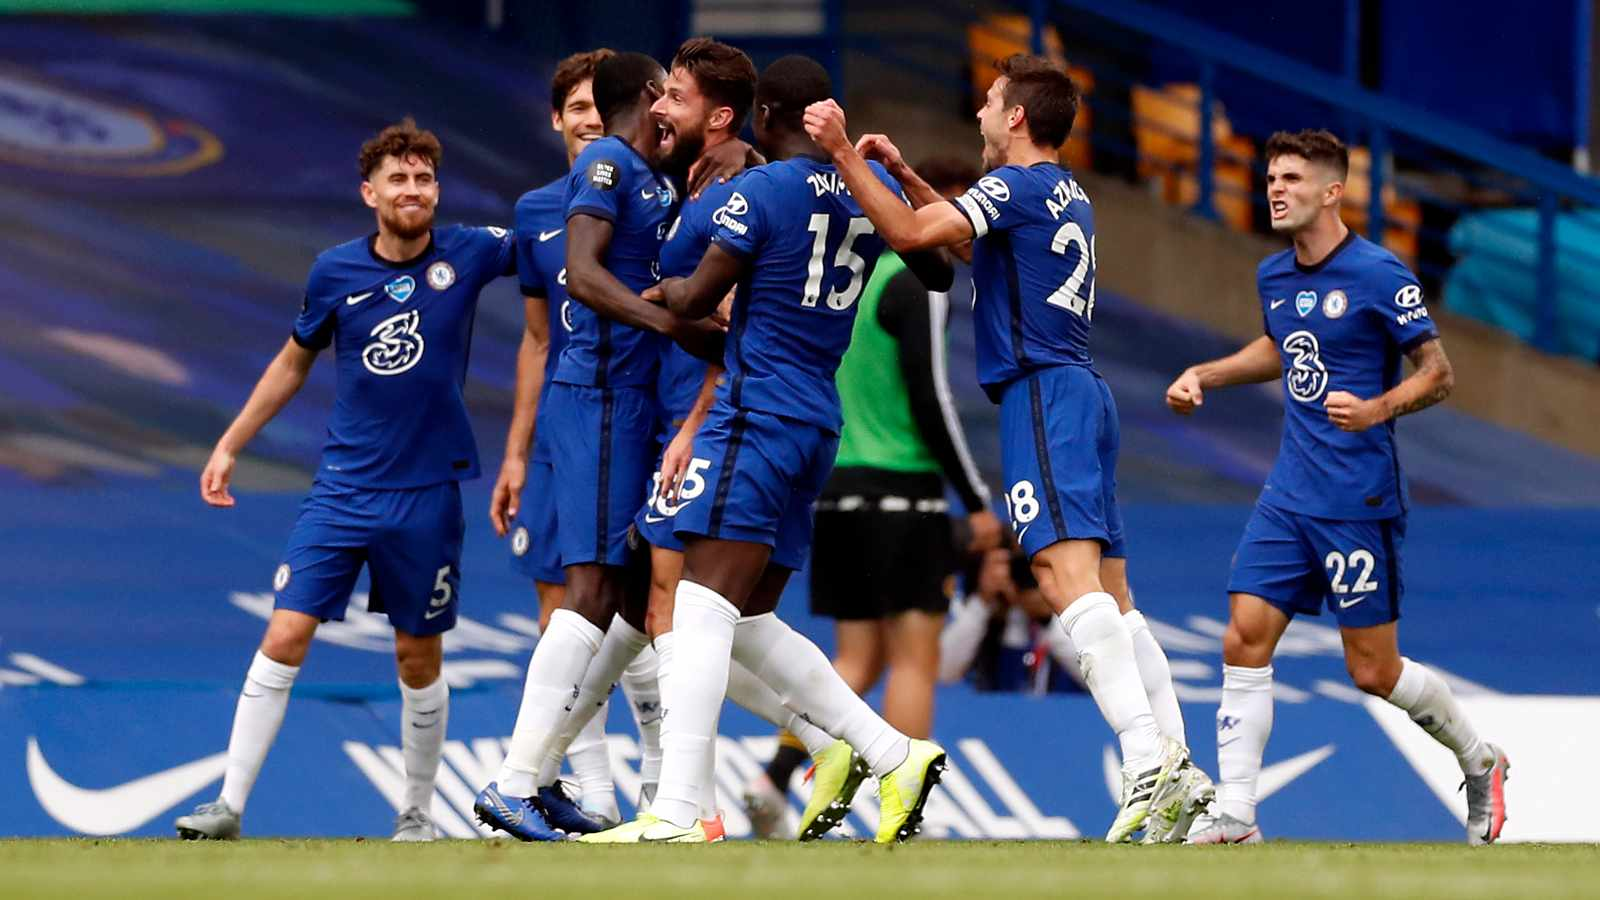 The agony and Blues ecstasy